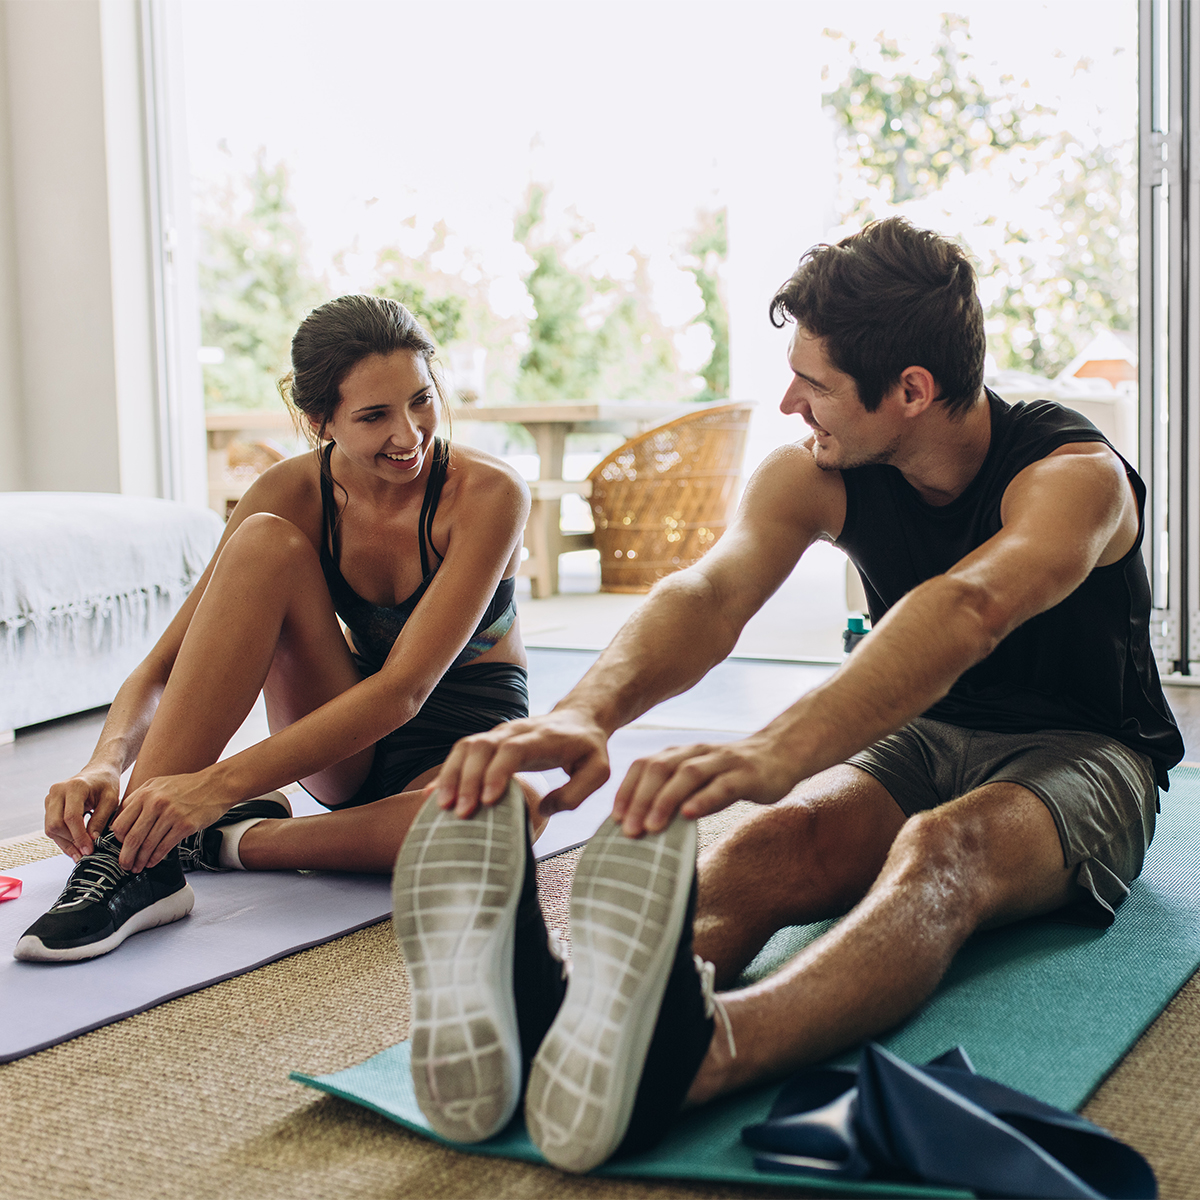 Exercise Made Fun: What Indoor Activity Fits Your Personality?